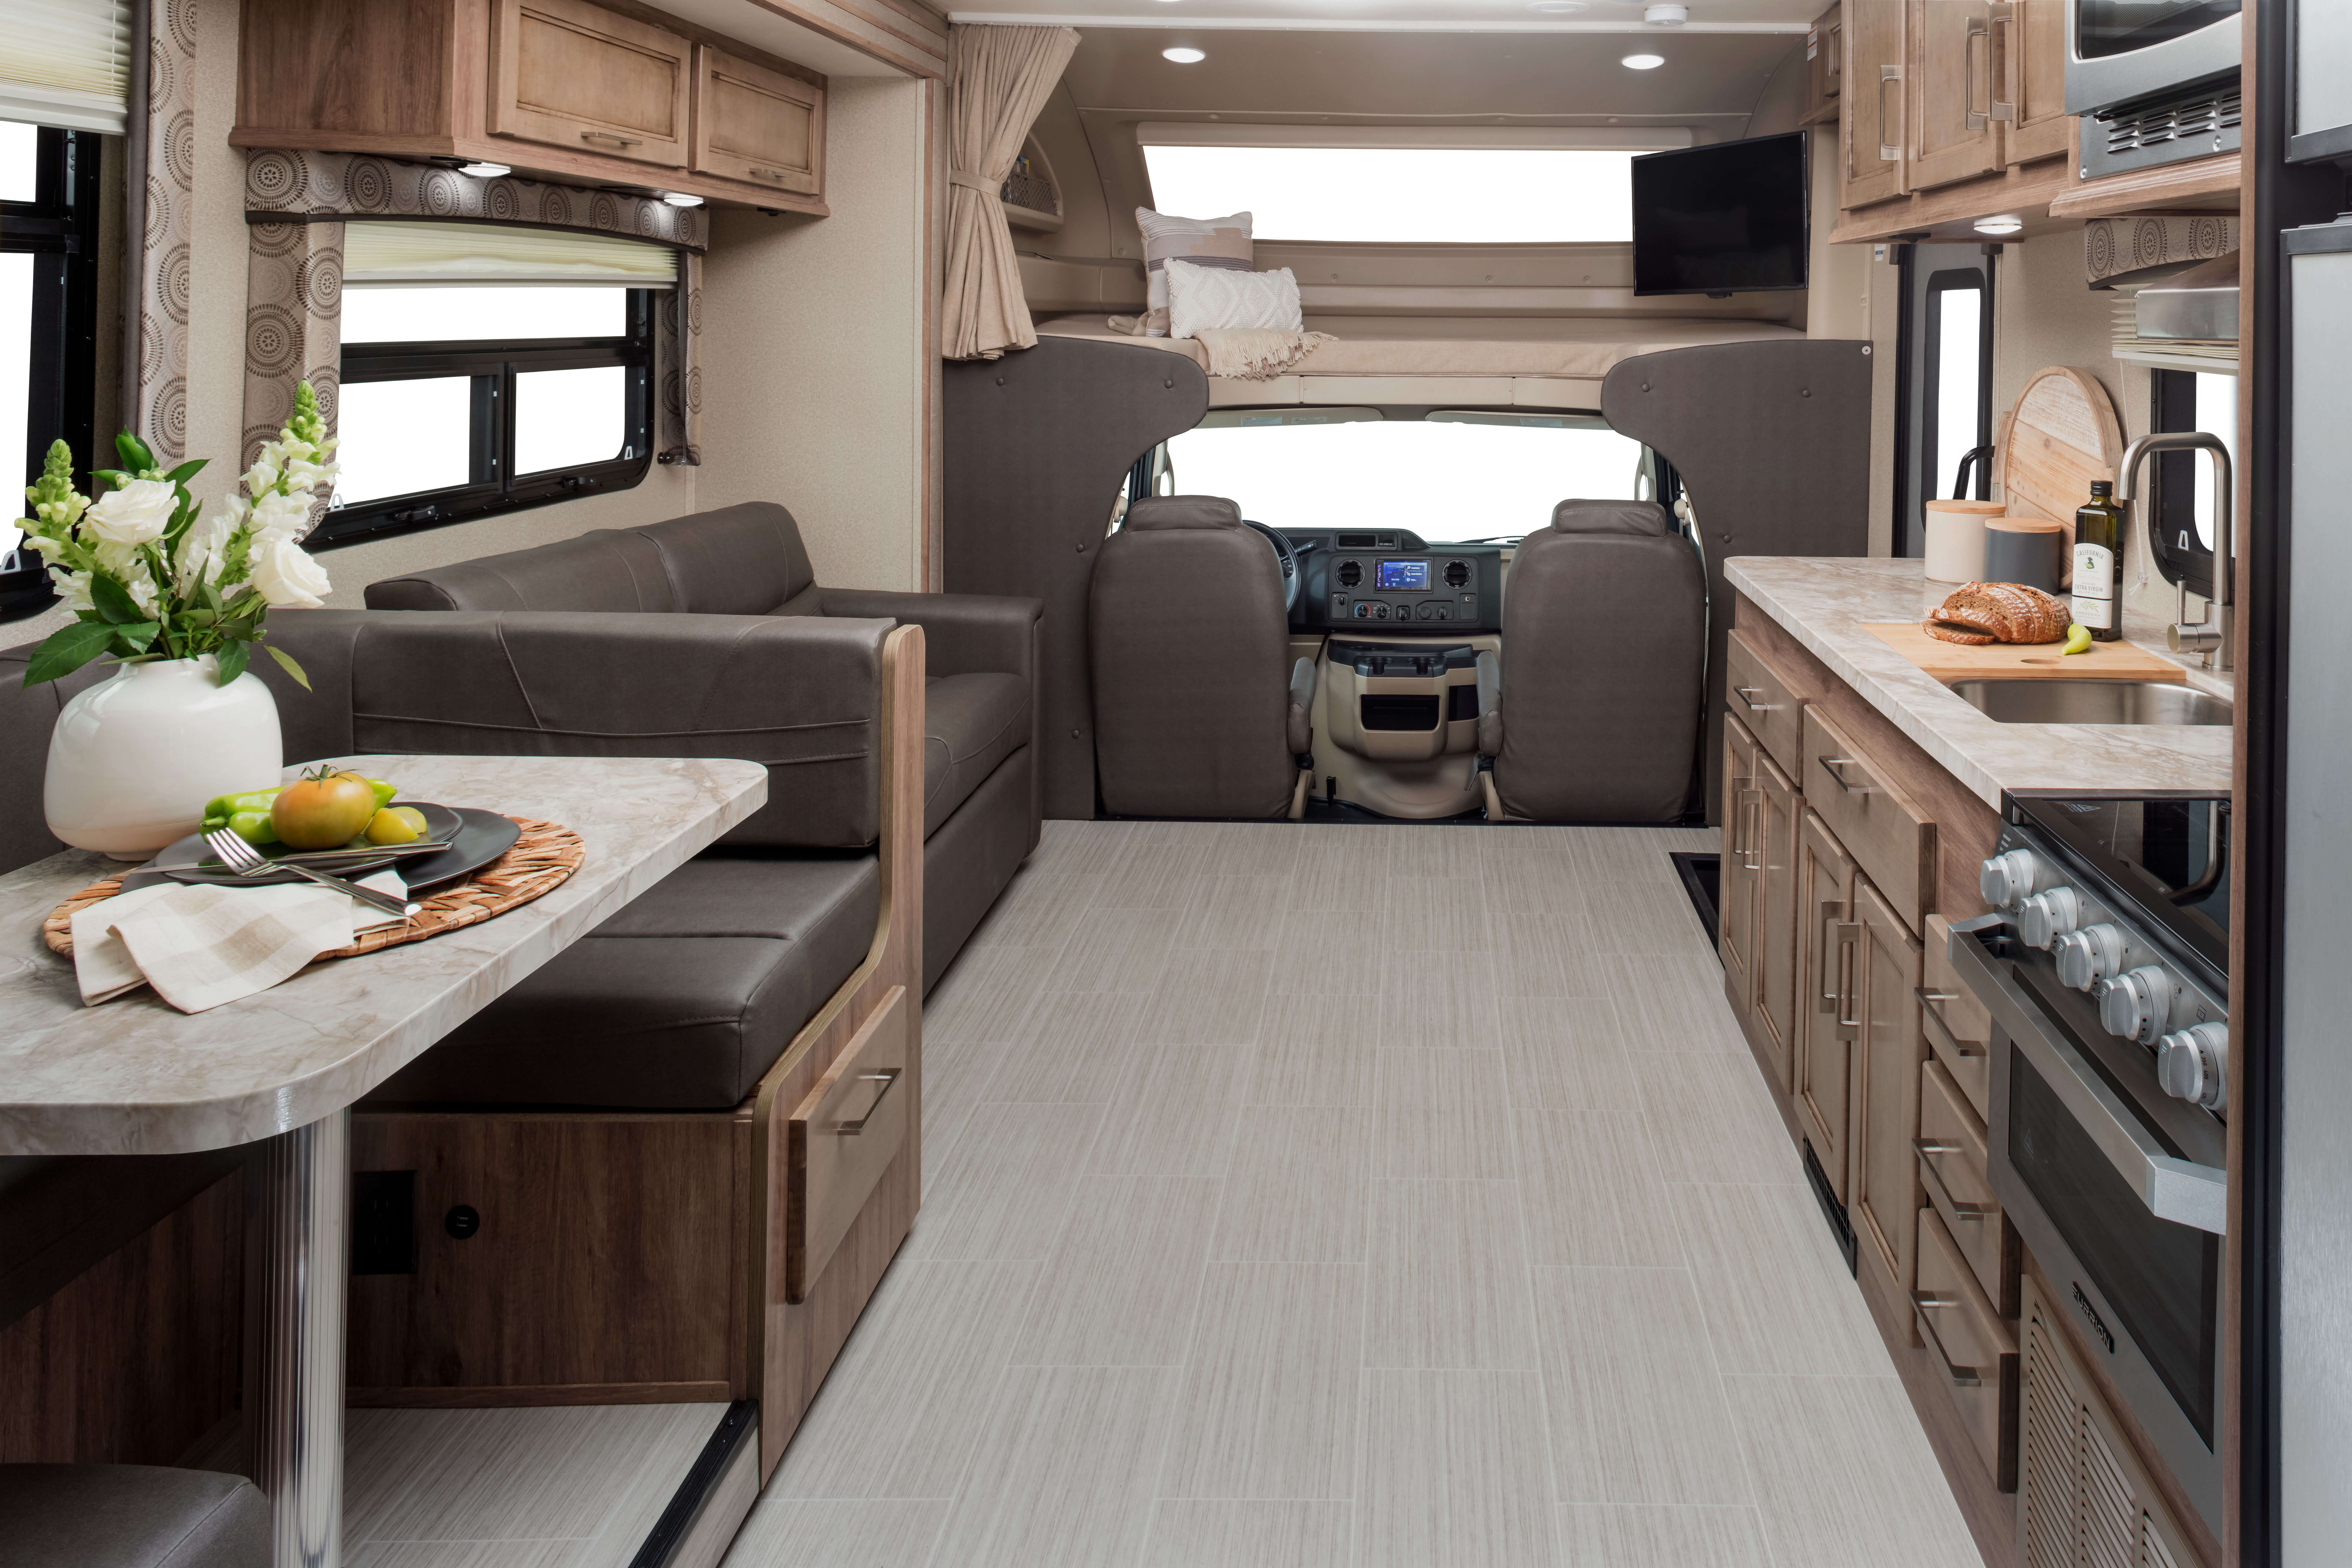 2020 Kitchen Design Manual The 2020 Odyssey Class C Motorhome Entegra Coach